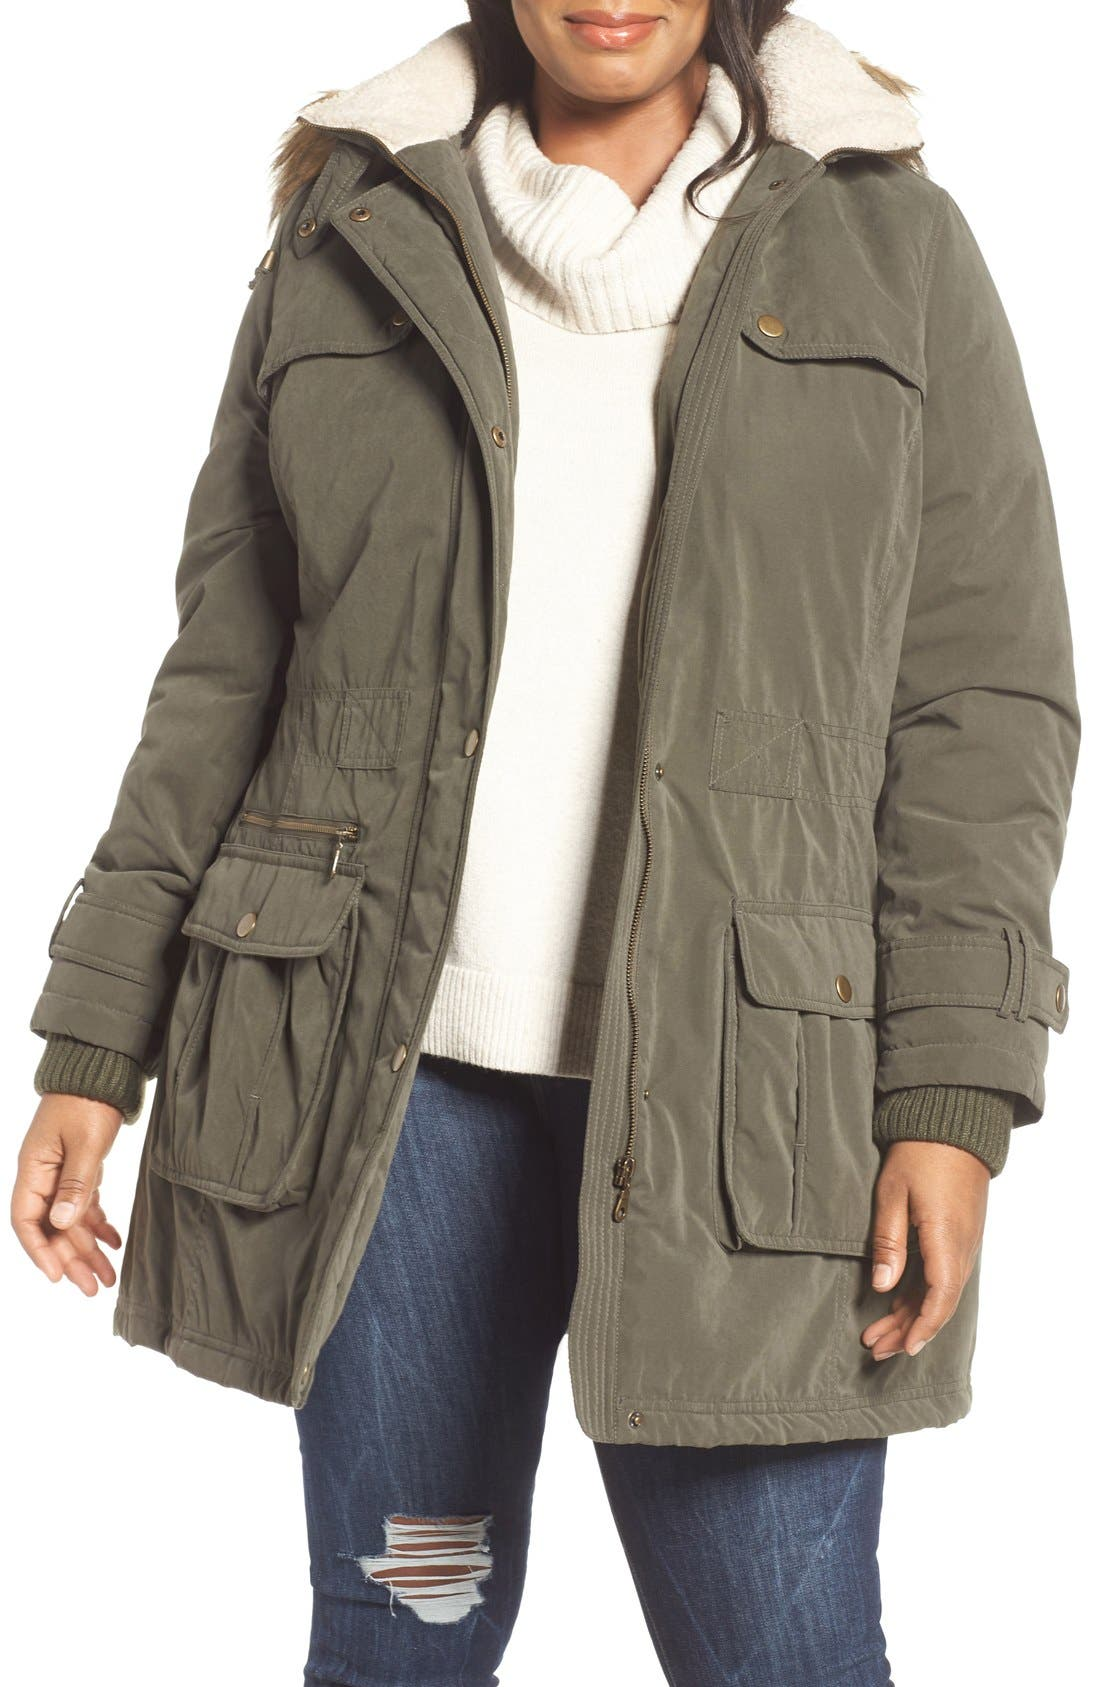 Alternate Image 1 Selected - Halogen® Hooded Parka with Faux Fur Trim (Plus Size)